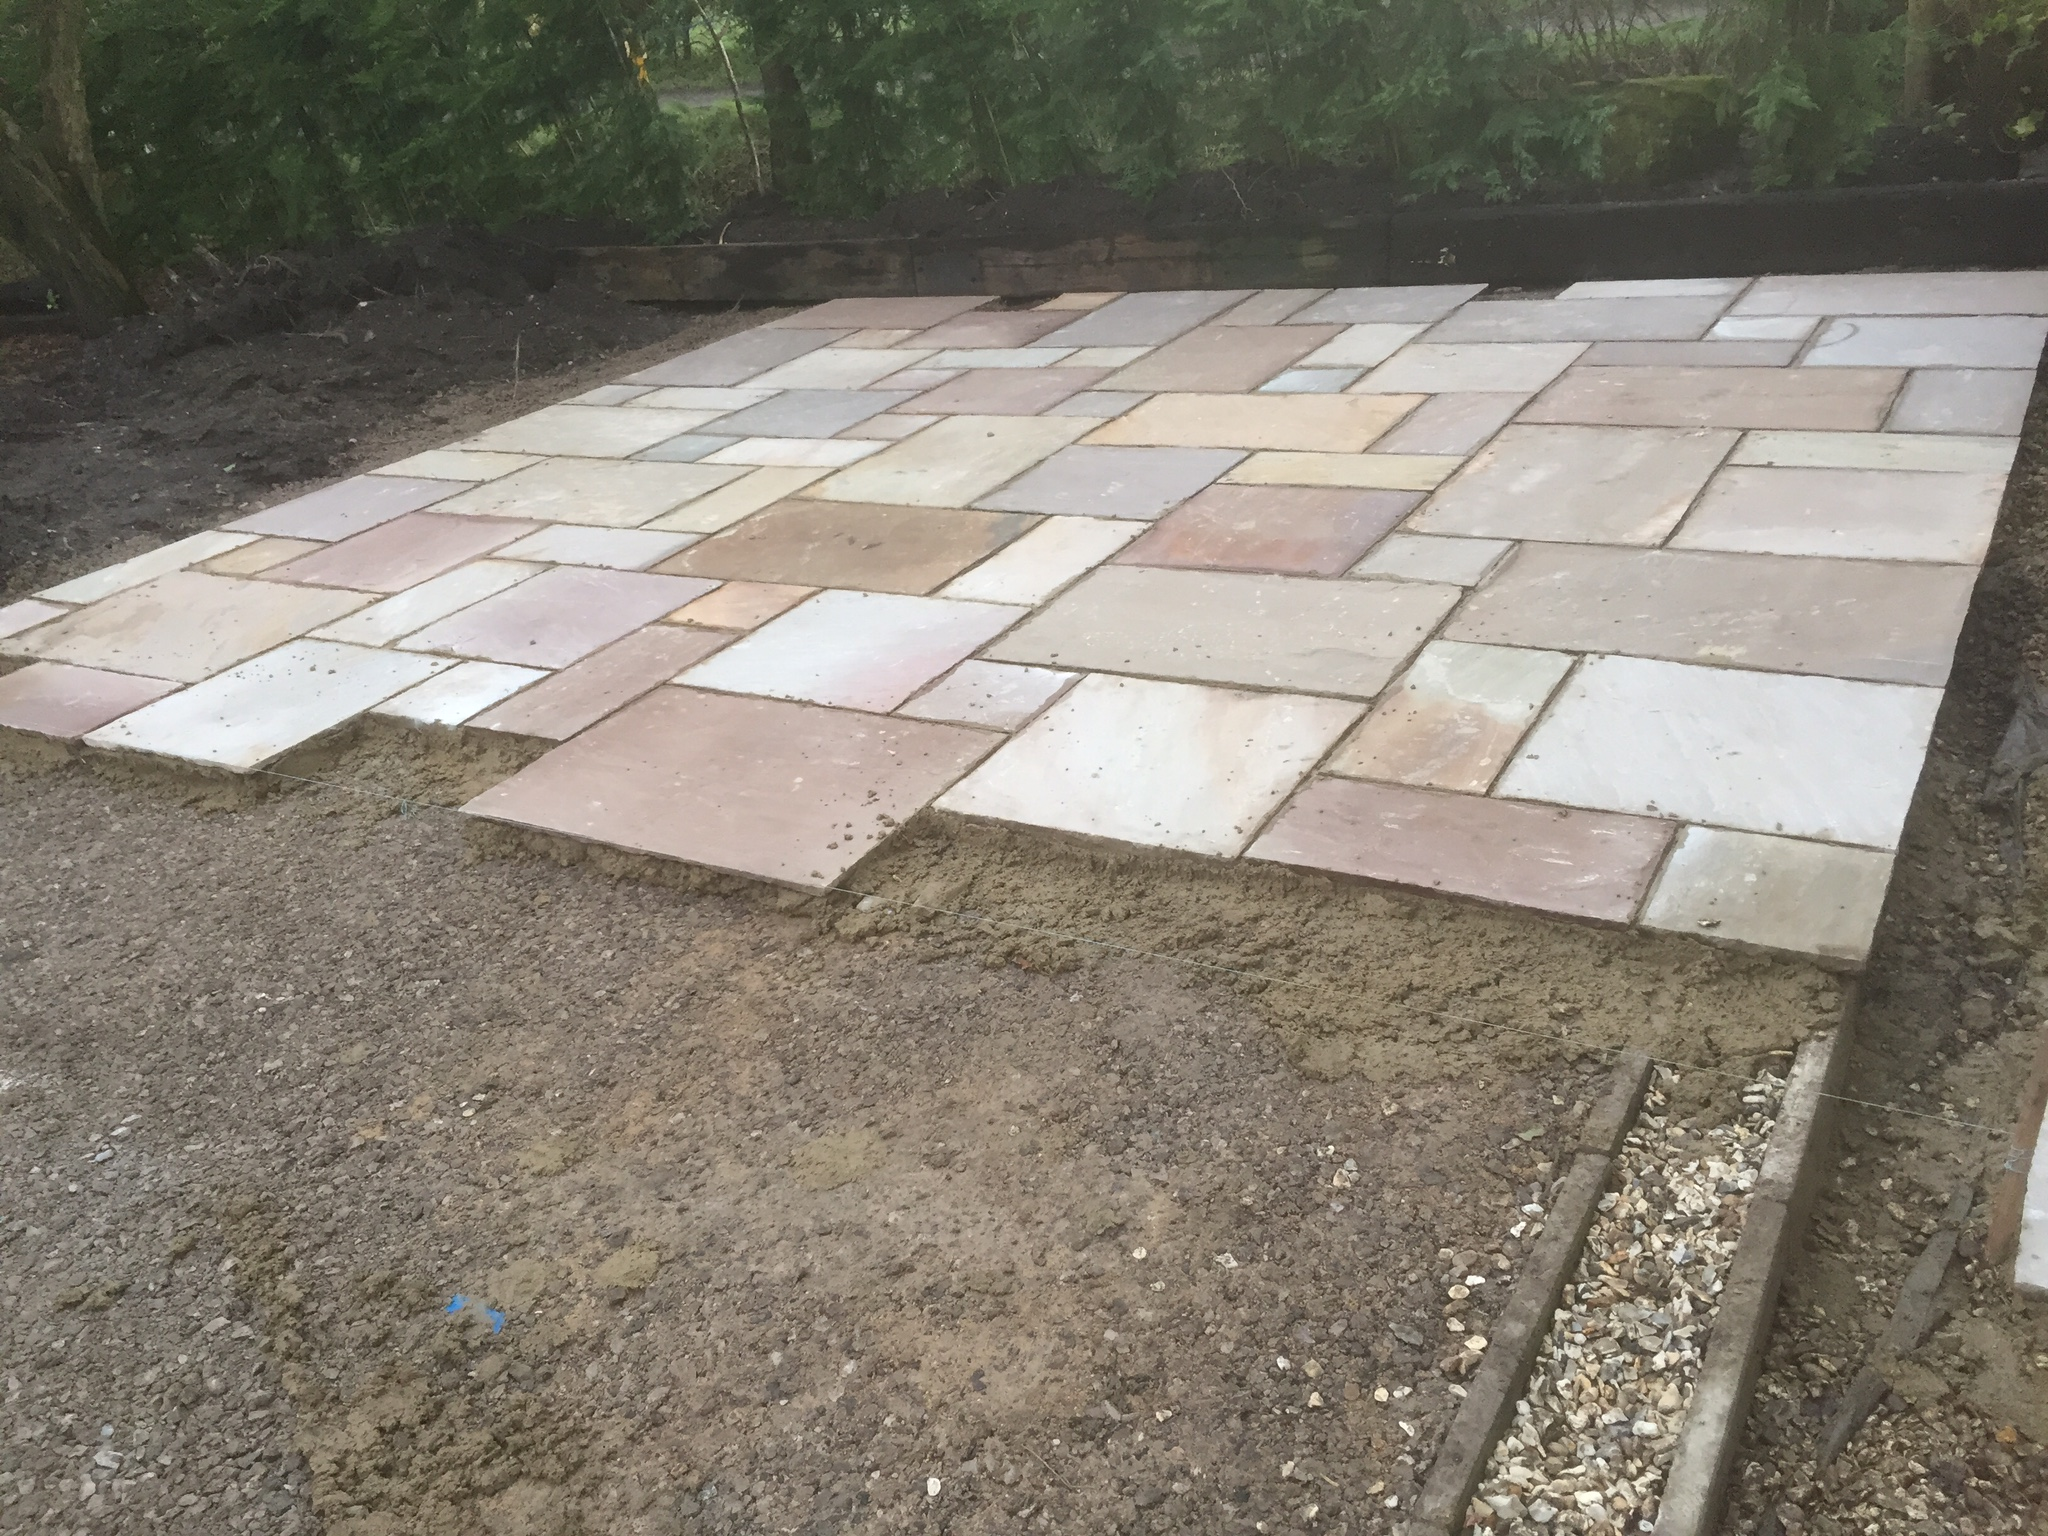 Incroyable Garden Patio Area Flagged With Indian Stone, Scarisbrick, Southport  Lancashire